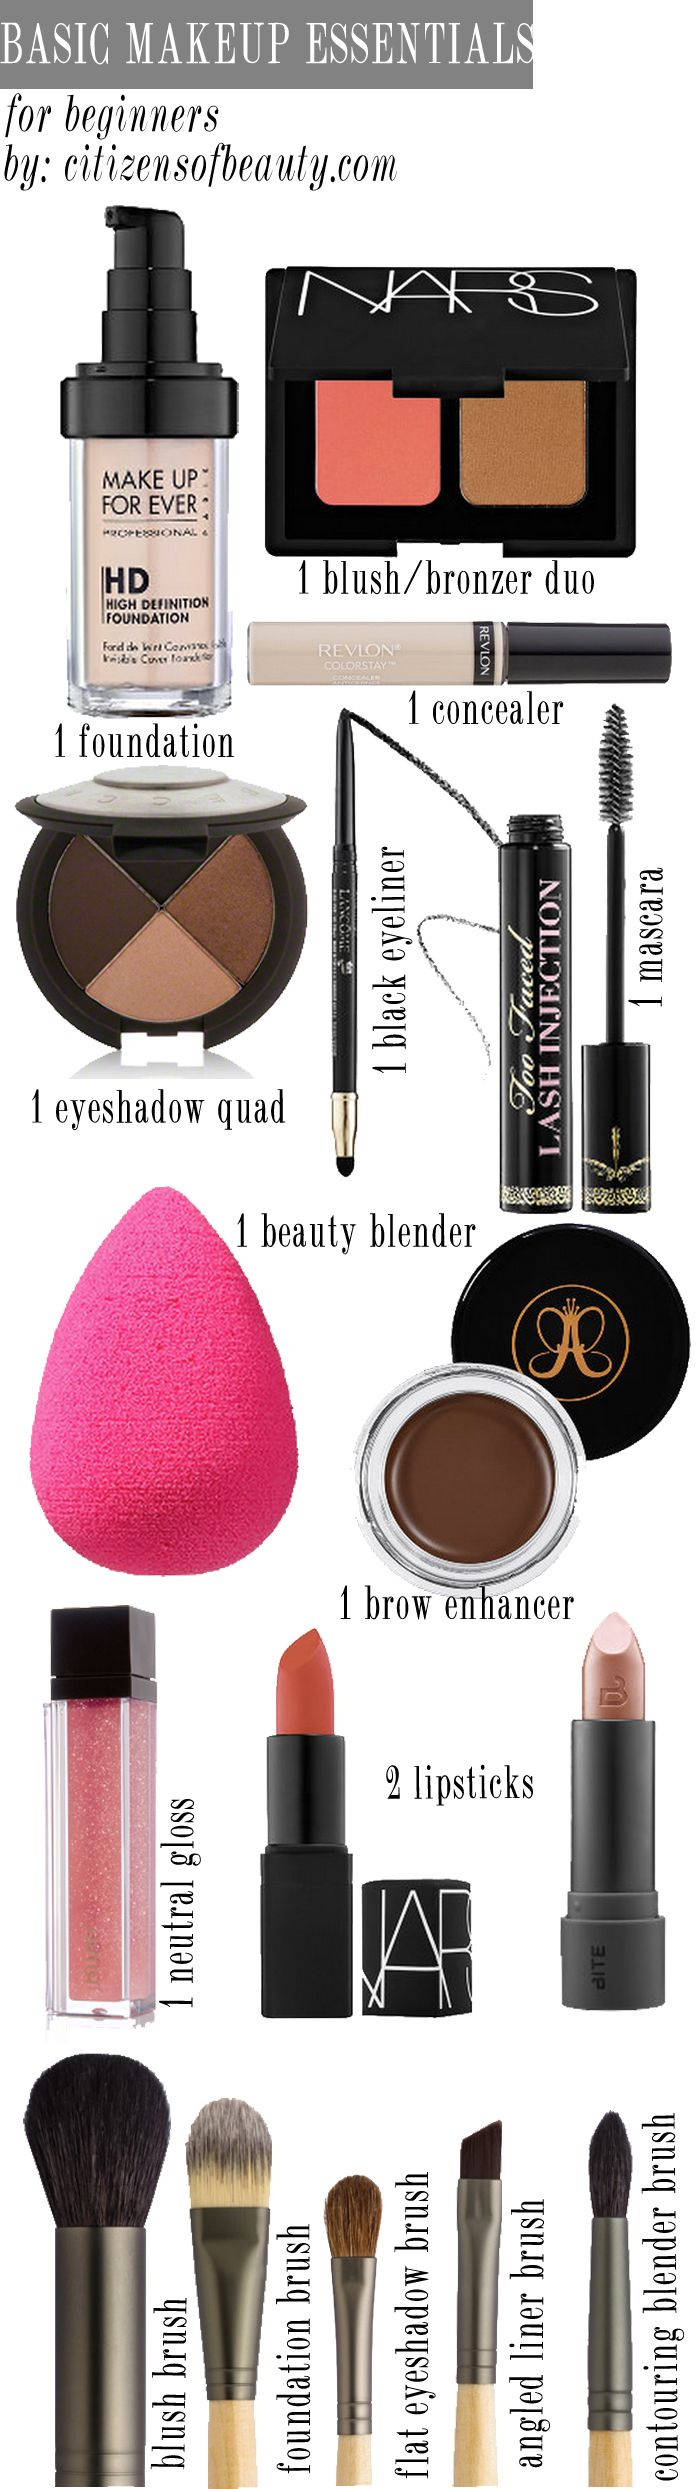 Basic Makeup Essentials for Beginners Un, For the and All.